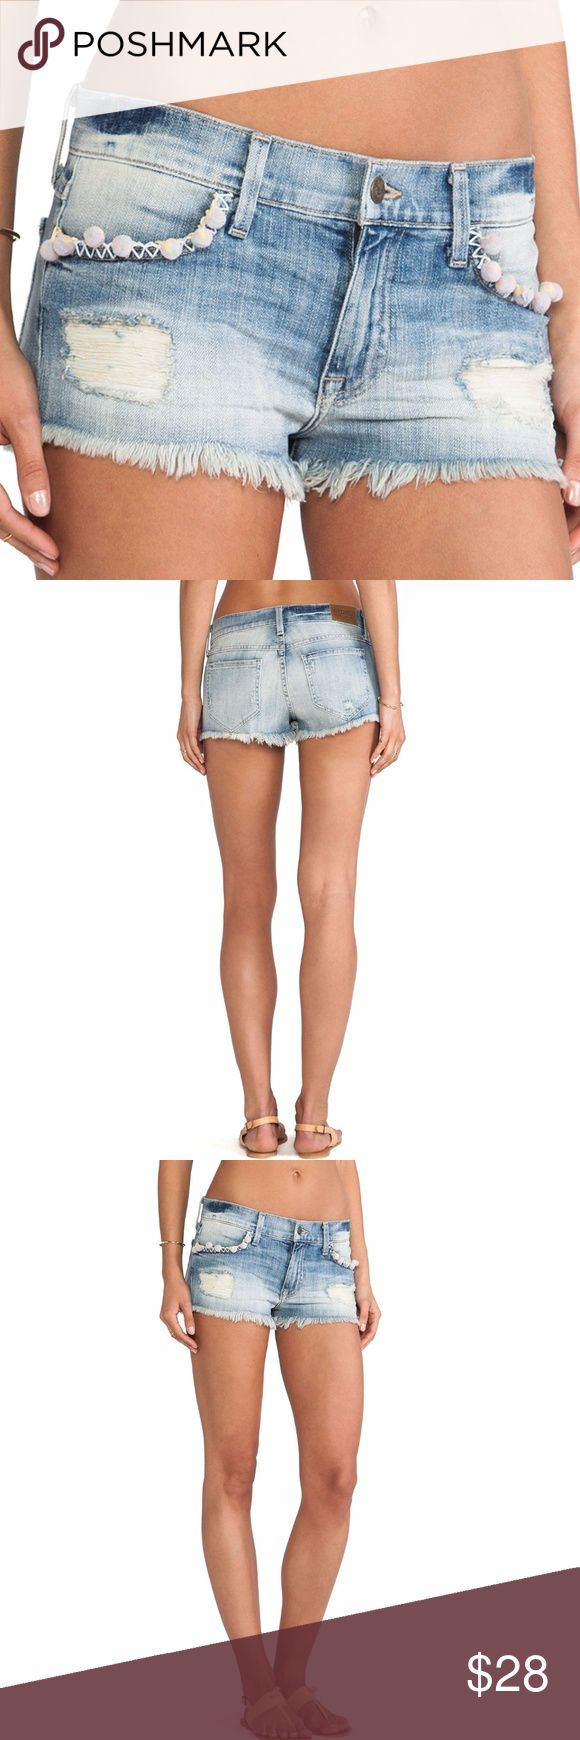 WILDFOX Destructed Lara Taboo Shorts w/Pom Poms 24 LARA SHORTS W/ POM POMS  WILDFOX COUTURE $165  Size 24 waist: 28 hips: 32 rise: 7 1/2 inseam: 1 1/2  98% cotton , 2% spandex Pom pom detail at the pockets Destroyed accents Frayed hem Four-pocket construction  condition: gently used, signs of wears on pom poms smoke-free home Wildfox Shorts Jean Shorts